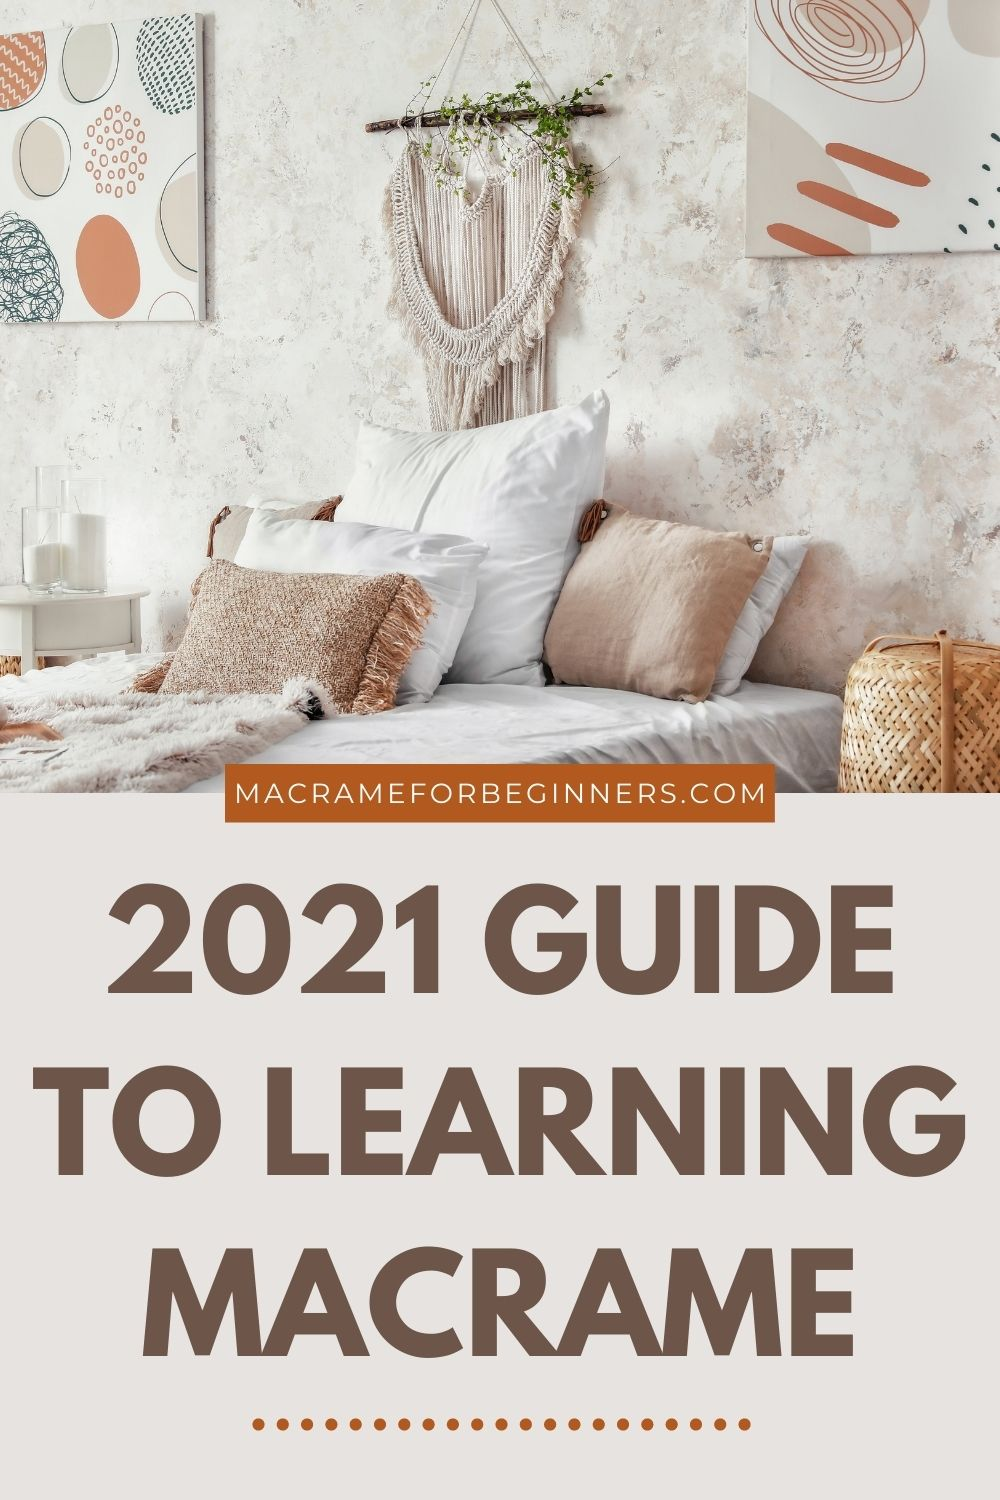 2021 Macrame Guide - How to Start with Macrame in 2021 - Super Quick Guide for Beginners 6